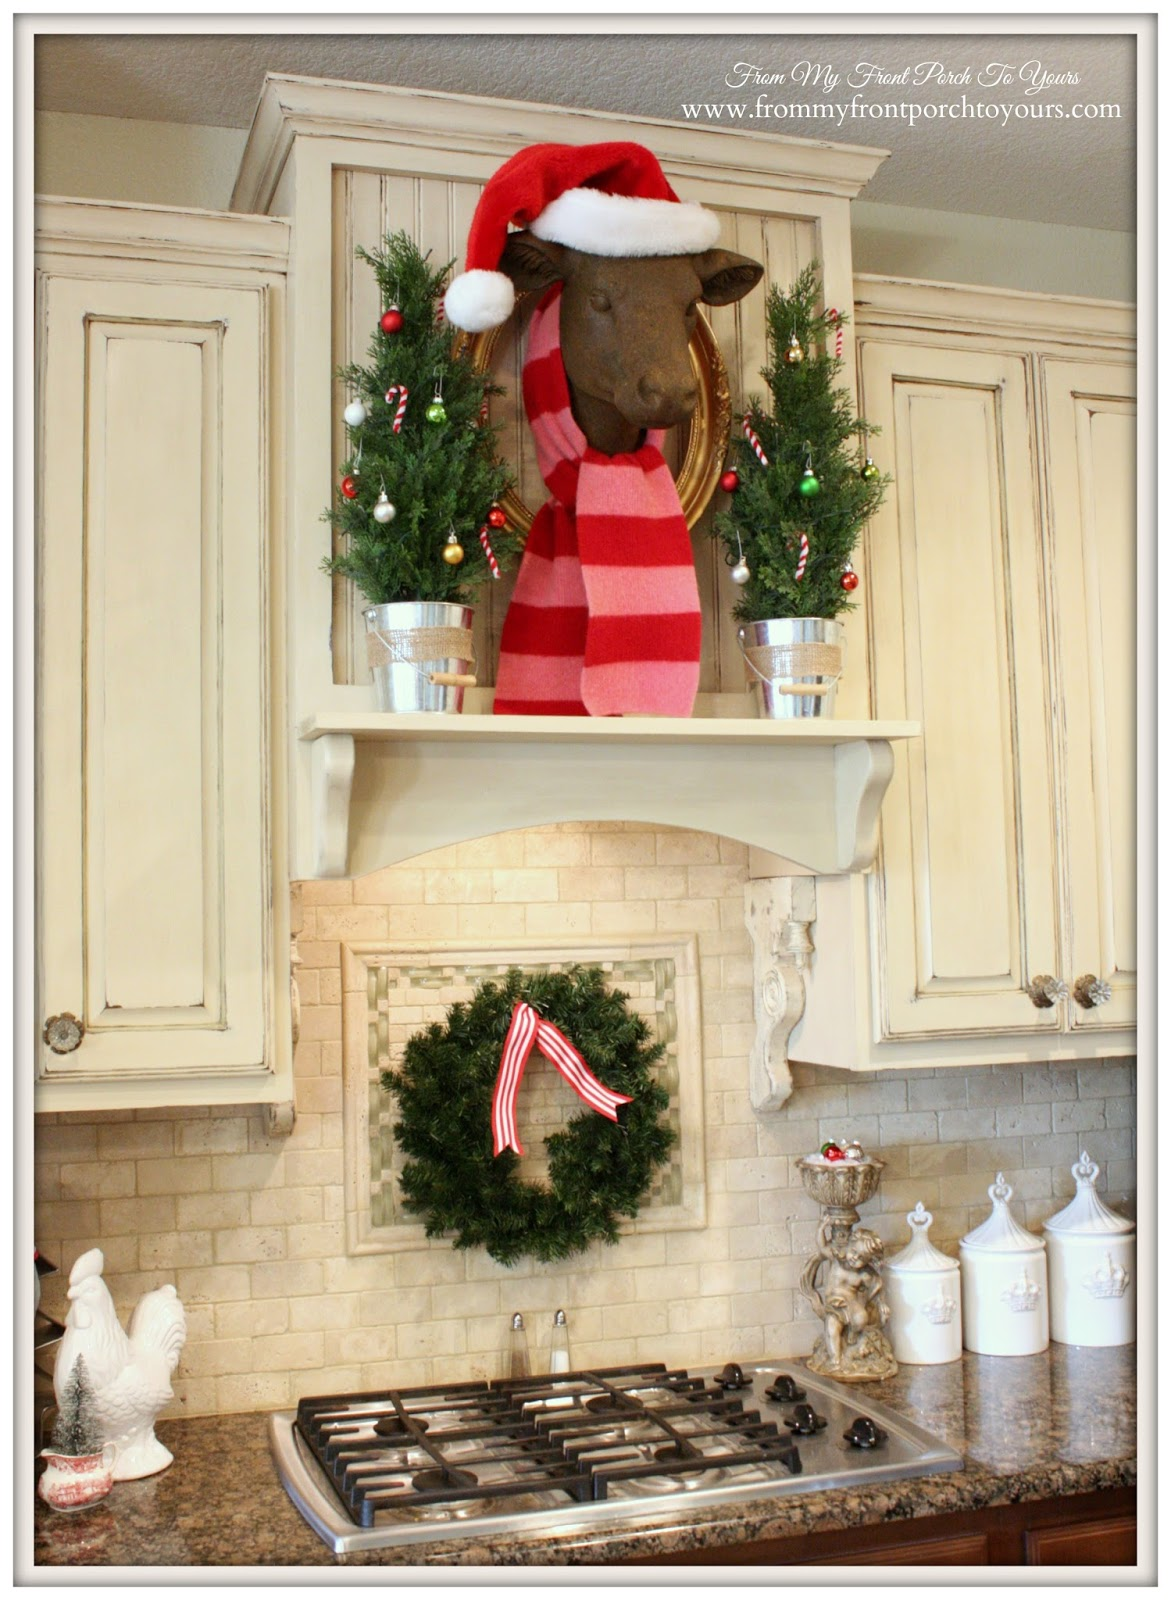 Bessie The Cow with Scarf-French Farmhouse Christmas Kitchen- From My Front Porch To Yours